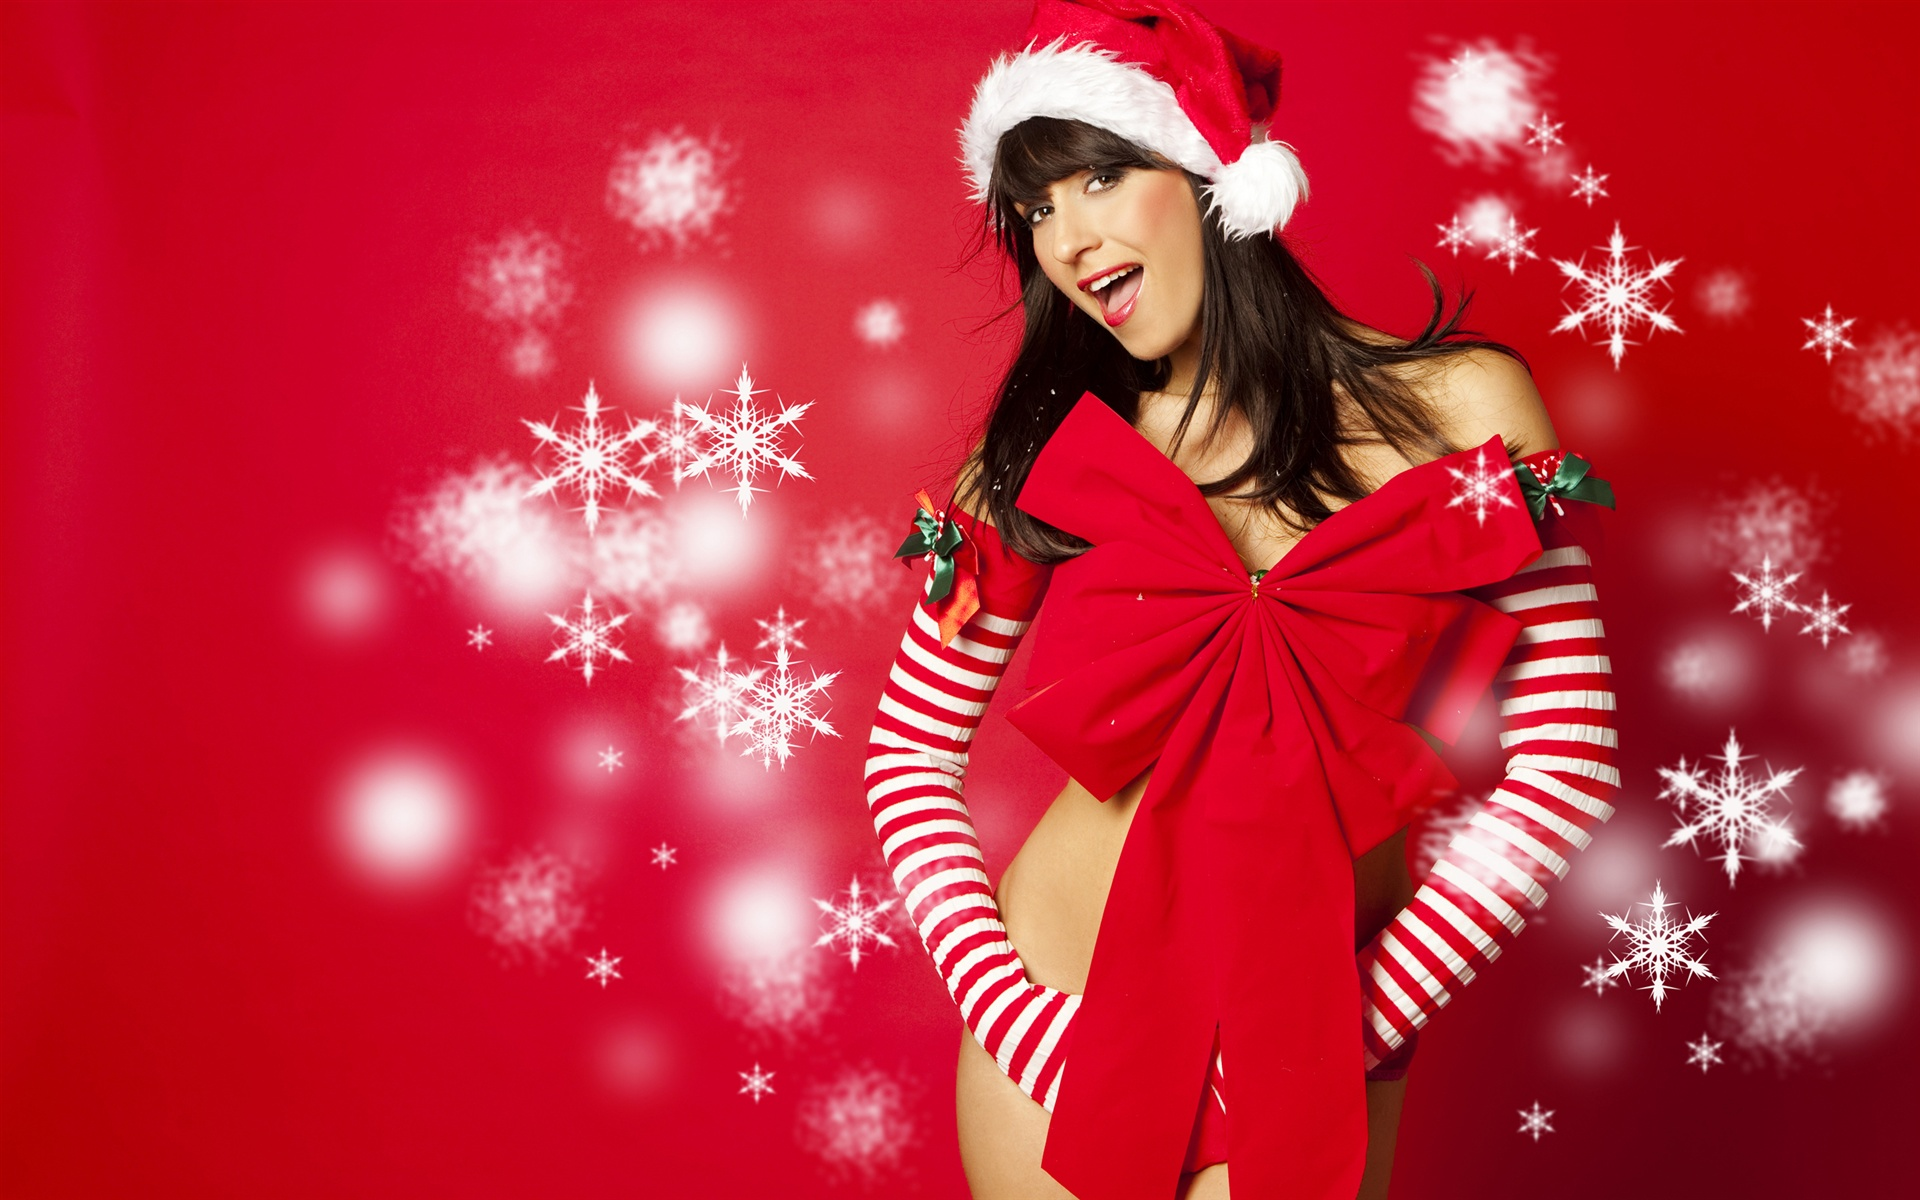 New Year Christmas Girl Wallpaper | 1920×1200 Resolution Wallpaper Wallpaper